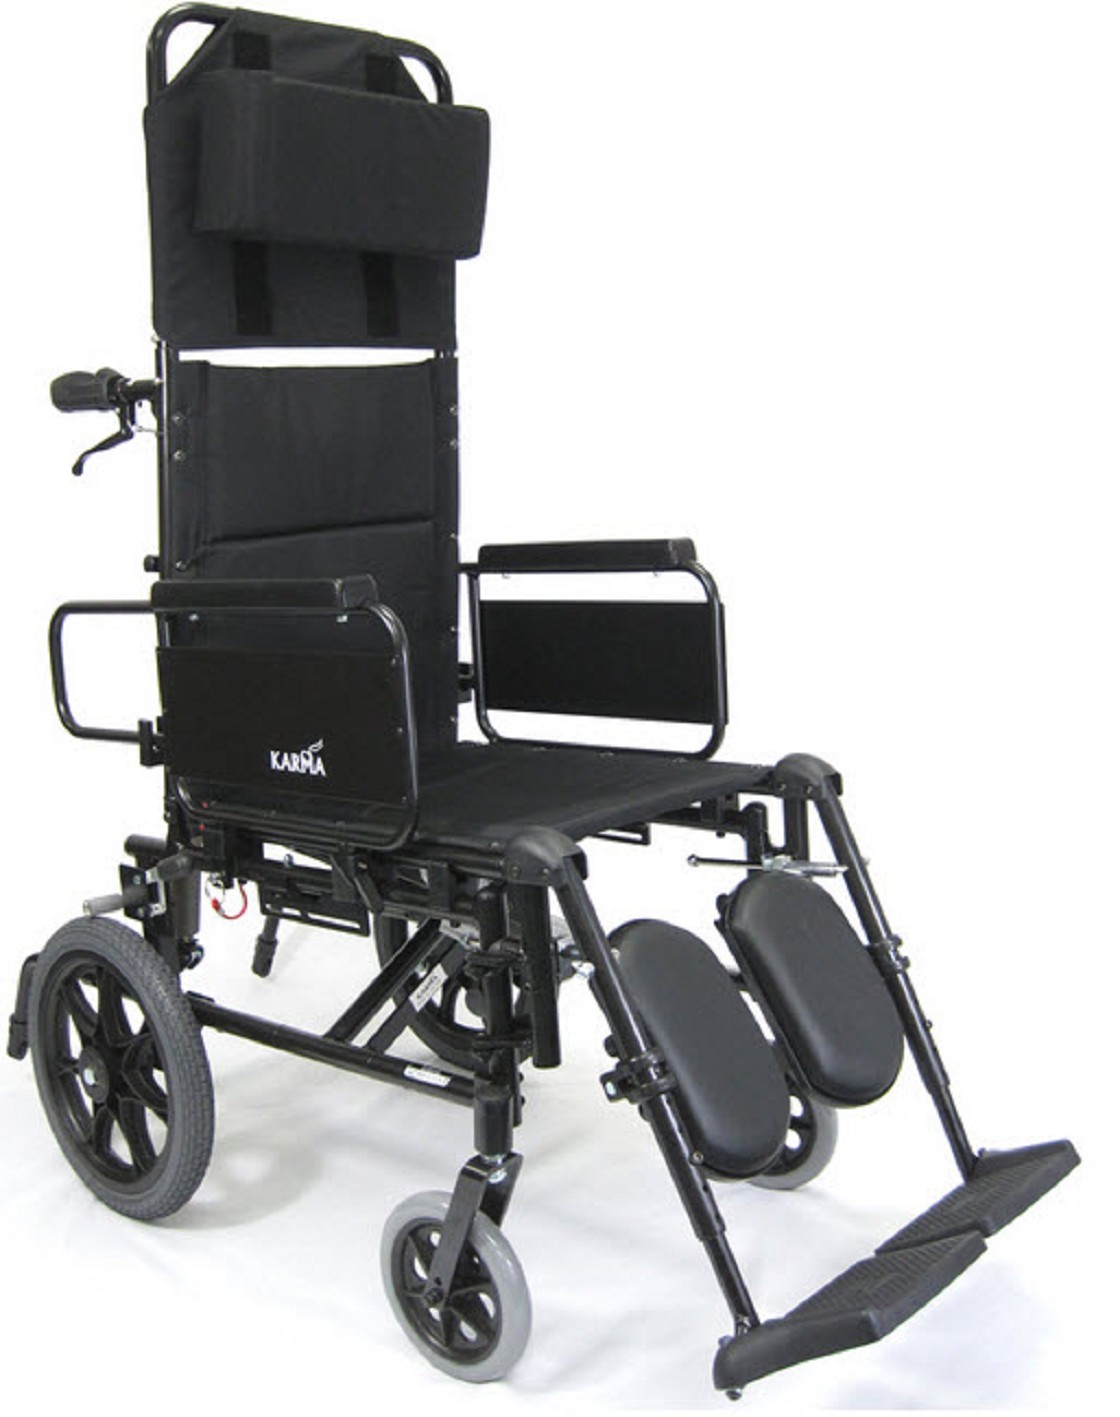 ultra light weight transporting recliner wheelchair. Black Bedroom Furniture Sets. Home Design Ideas